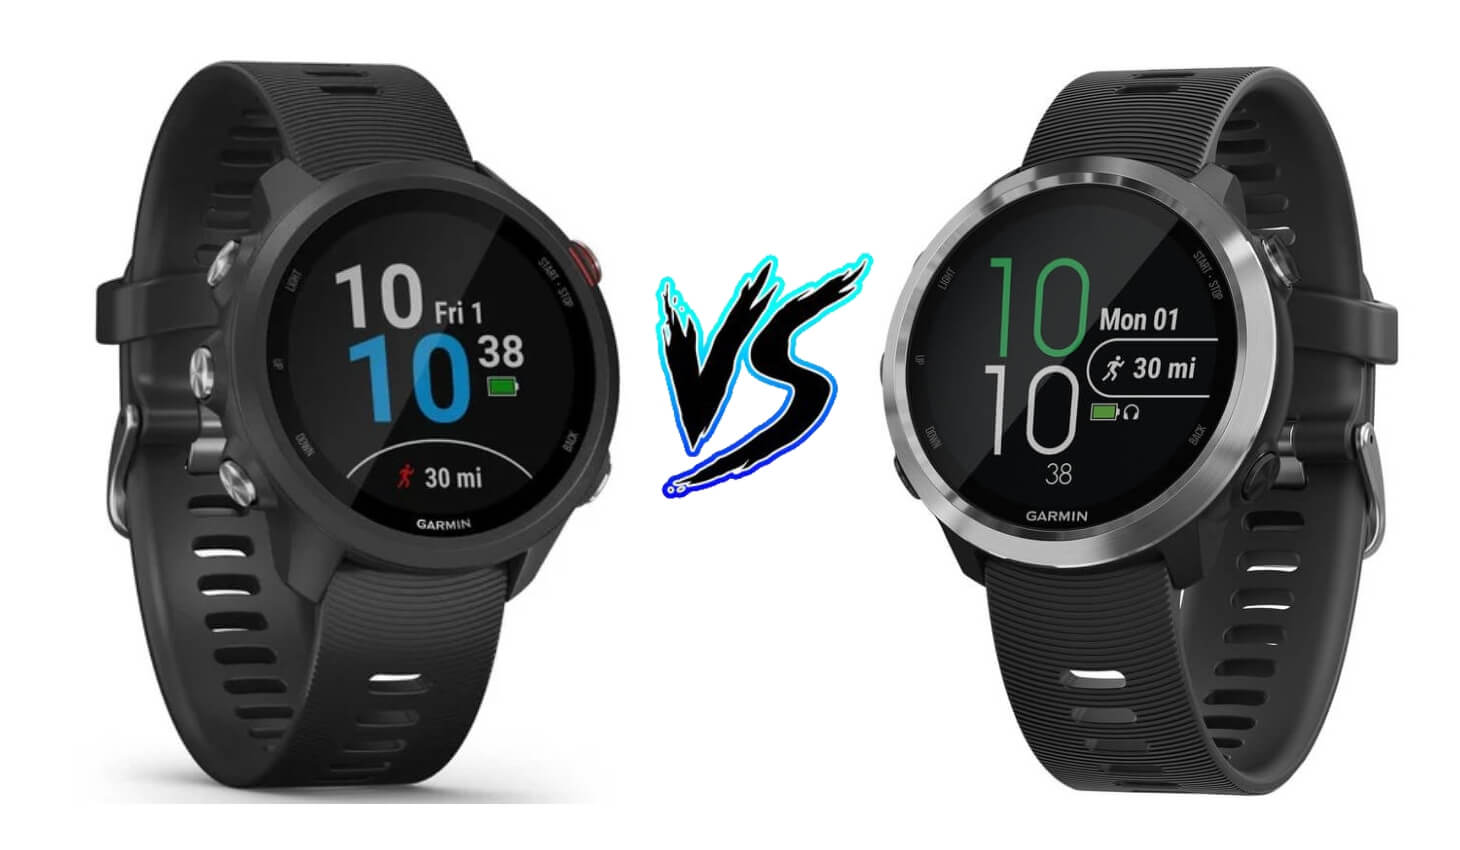 Garmin Forerunner 245 vs Forerunner 645 – Product Comparison